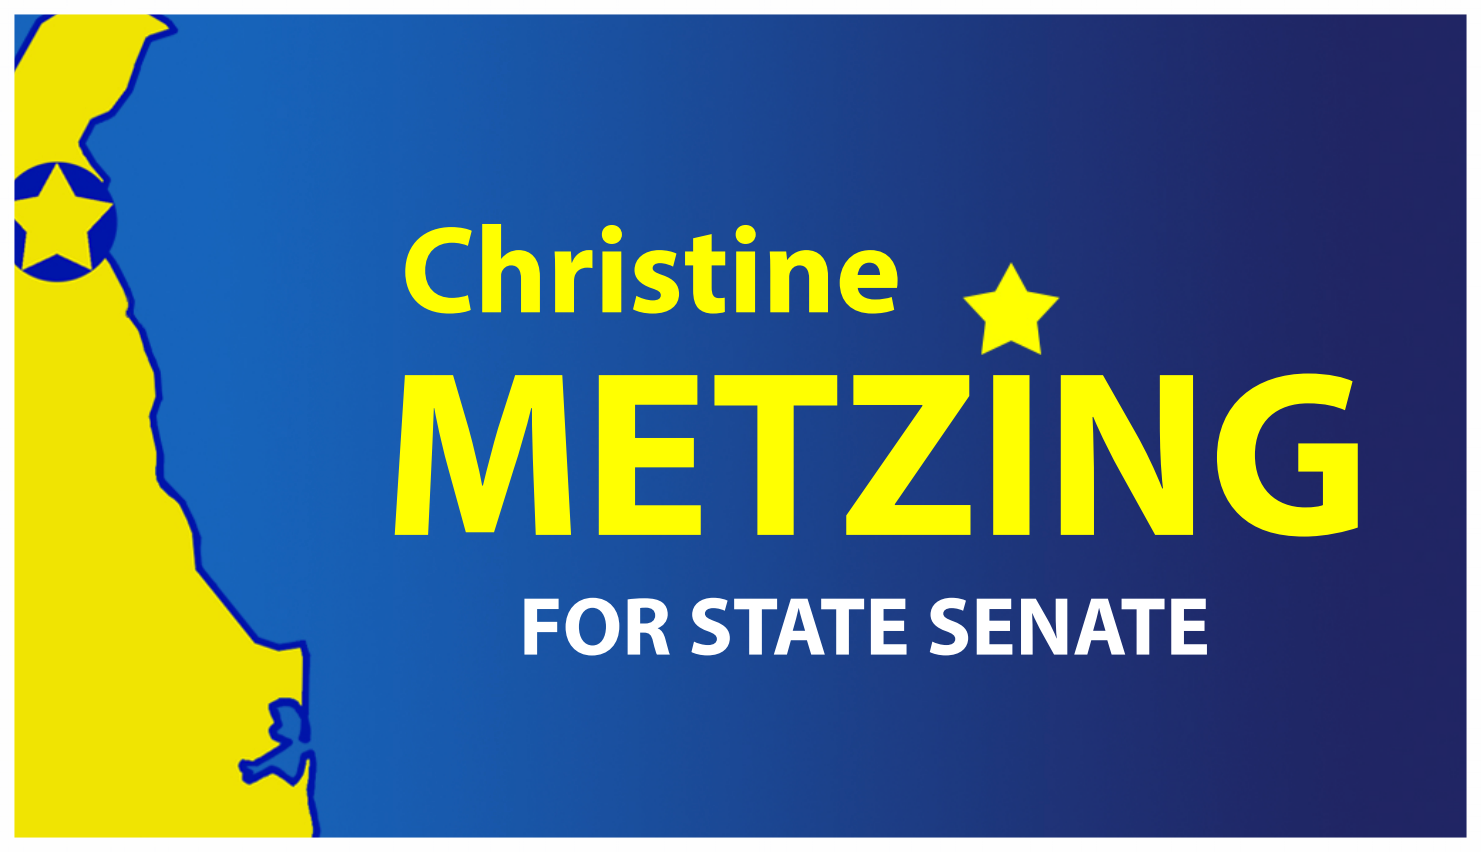 METZING FOR DELAWARE